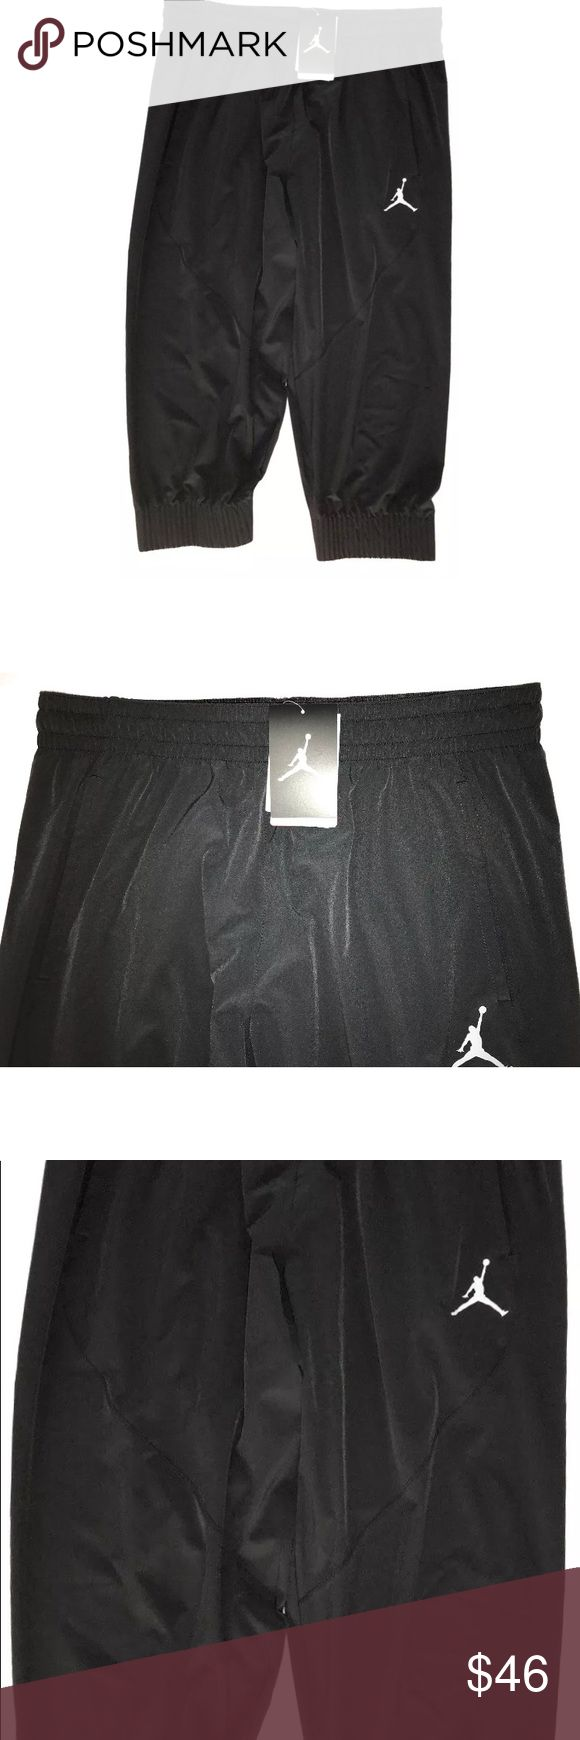 Nike Jordan Ultimate Flight CAPRI Basketball Pants Nike Jordan Men's CAPRI LENGTH Basketball Pants Size XL New  Short capri length Stretch waistband, inner drawstring Side front pockets Stretch leg opening Size XL 87% Recycled Polyester, 13% Spandex MSRP on tag is $90  Thank you so much! Nike Jordan Pants